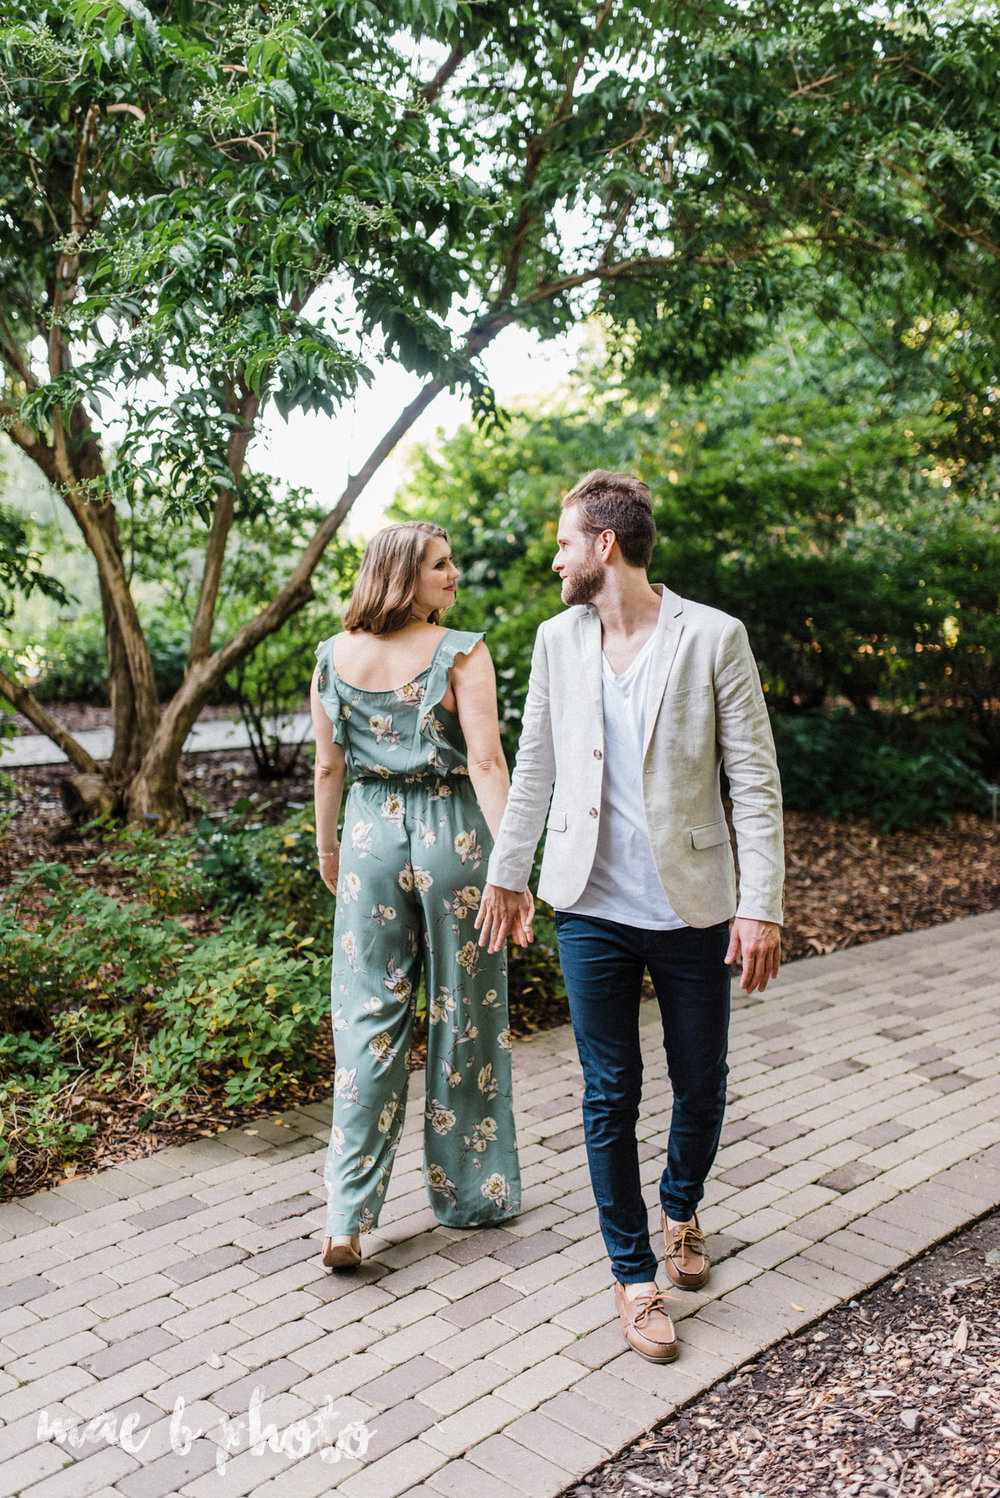 lauren and steve's summer engagement session at the rose gardens and lanterman's mill in mill creek park in youngstown ohio photographed by youngstown wedding photographer mae b photo-21.jpg